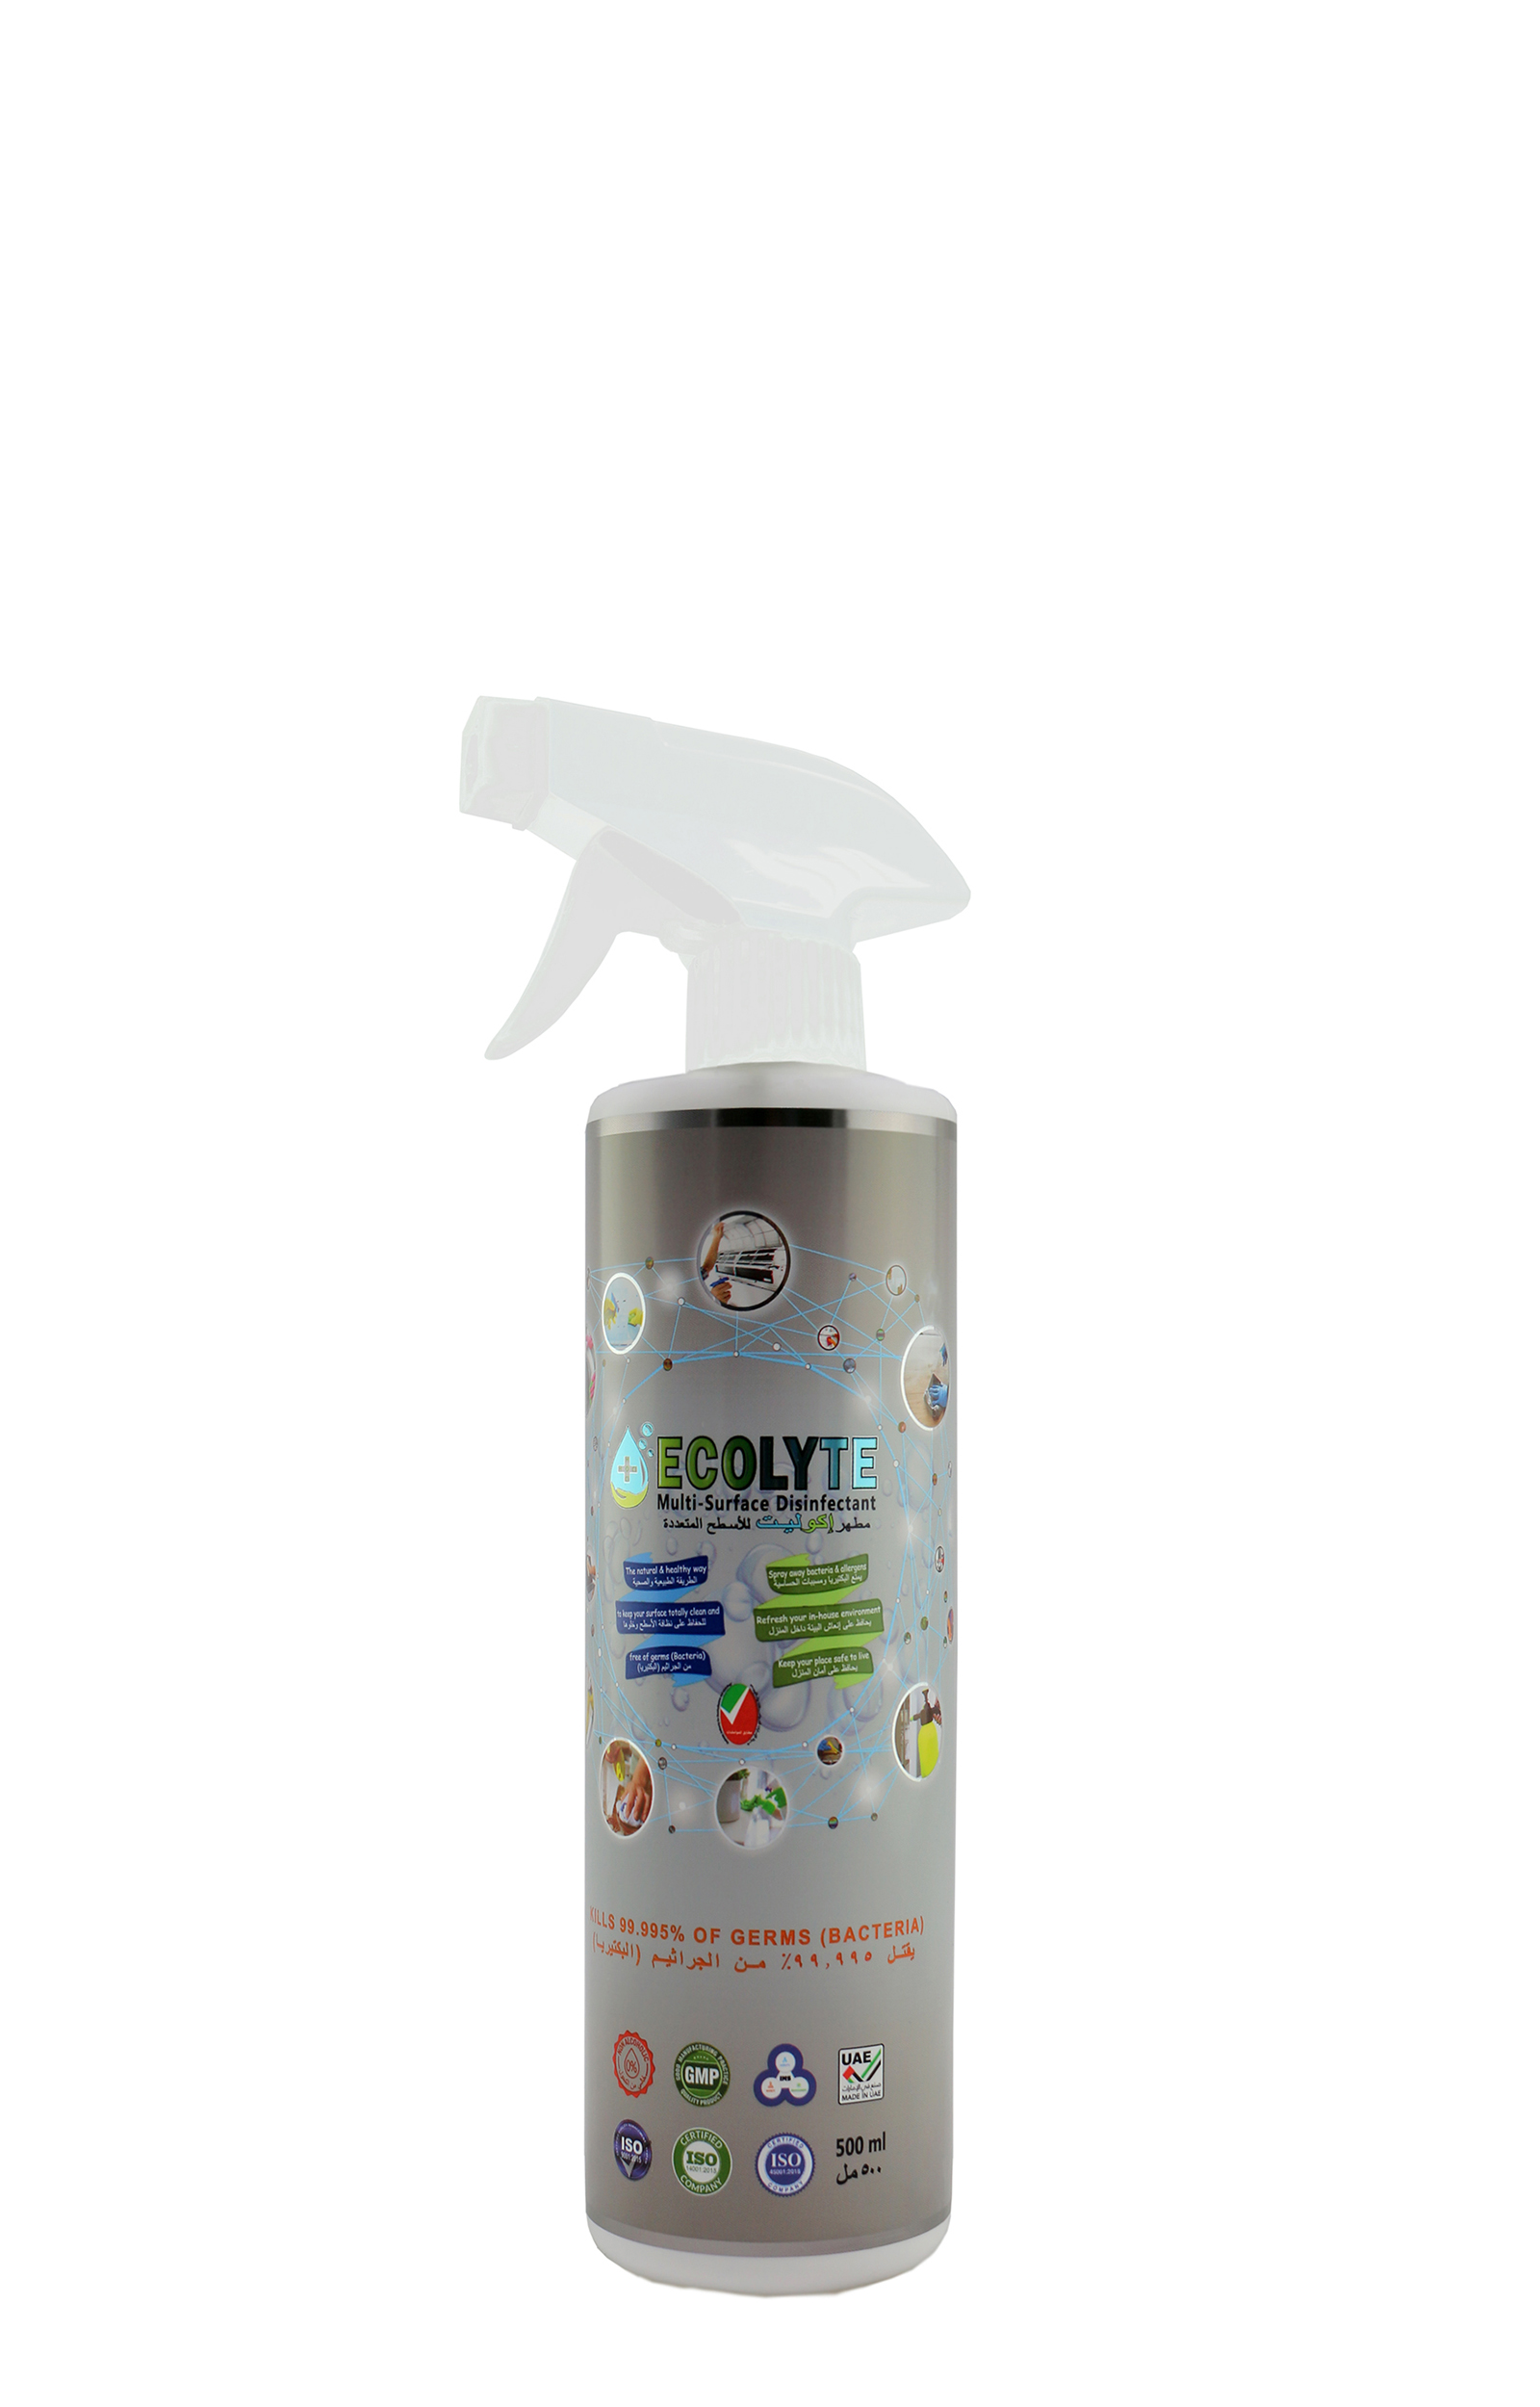 ECOLYTE MULTI-SURFACE DISINFECTANT 100% NATURAL - 500 ML